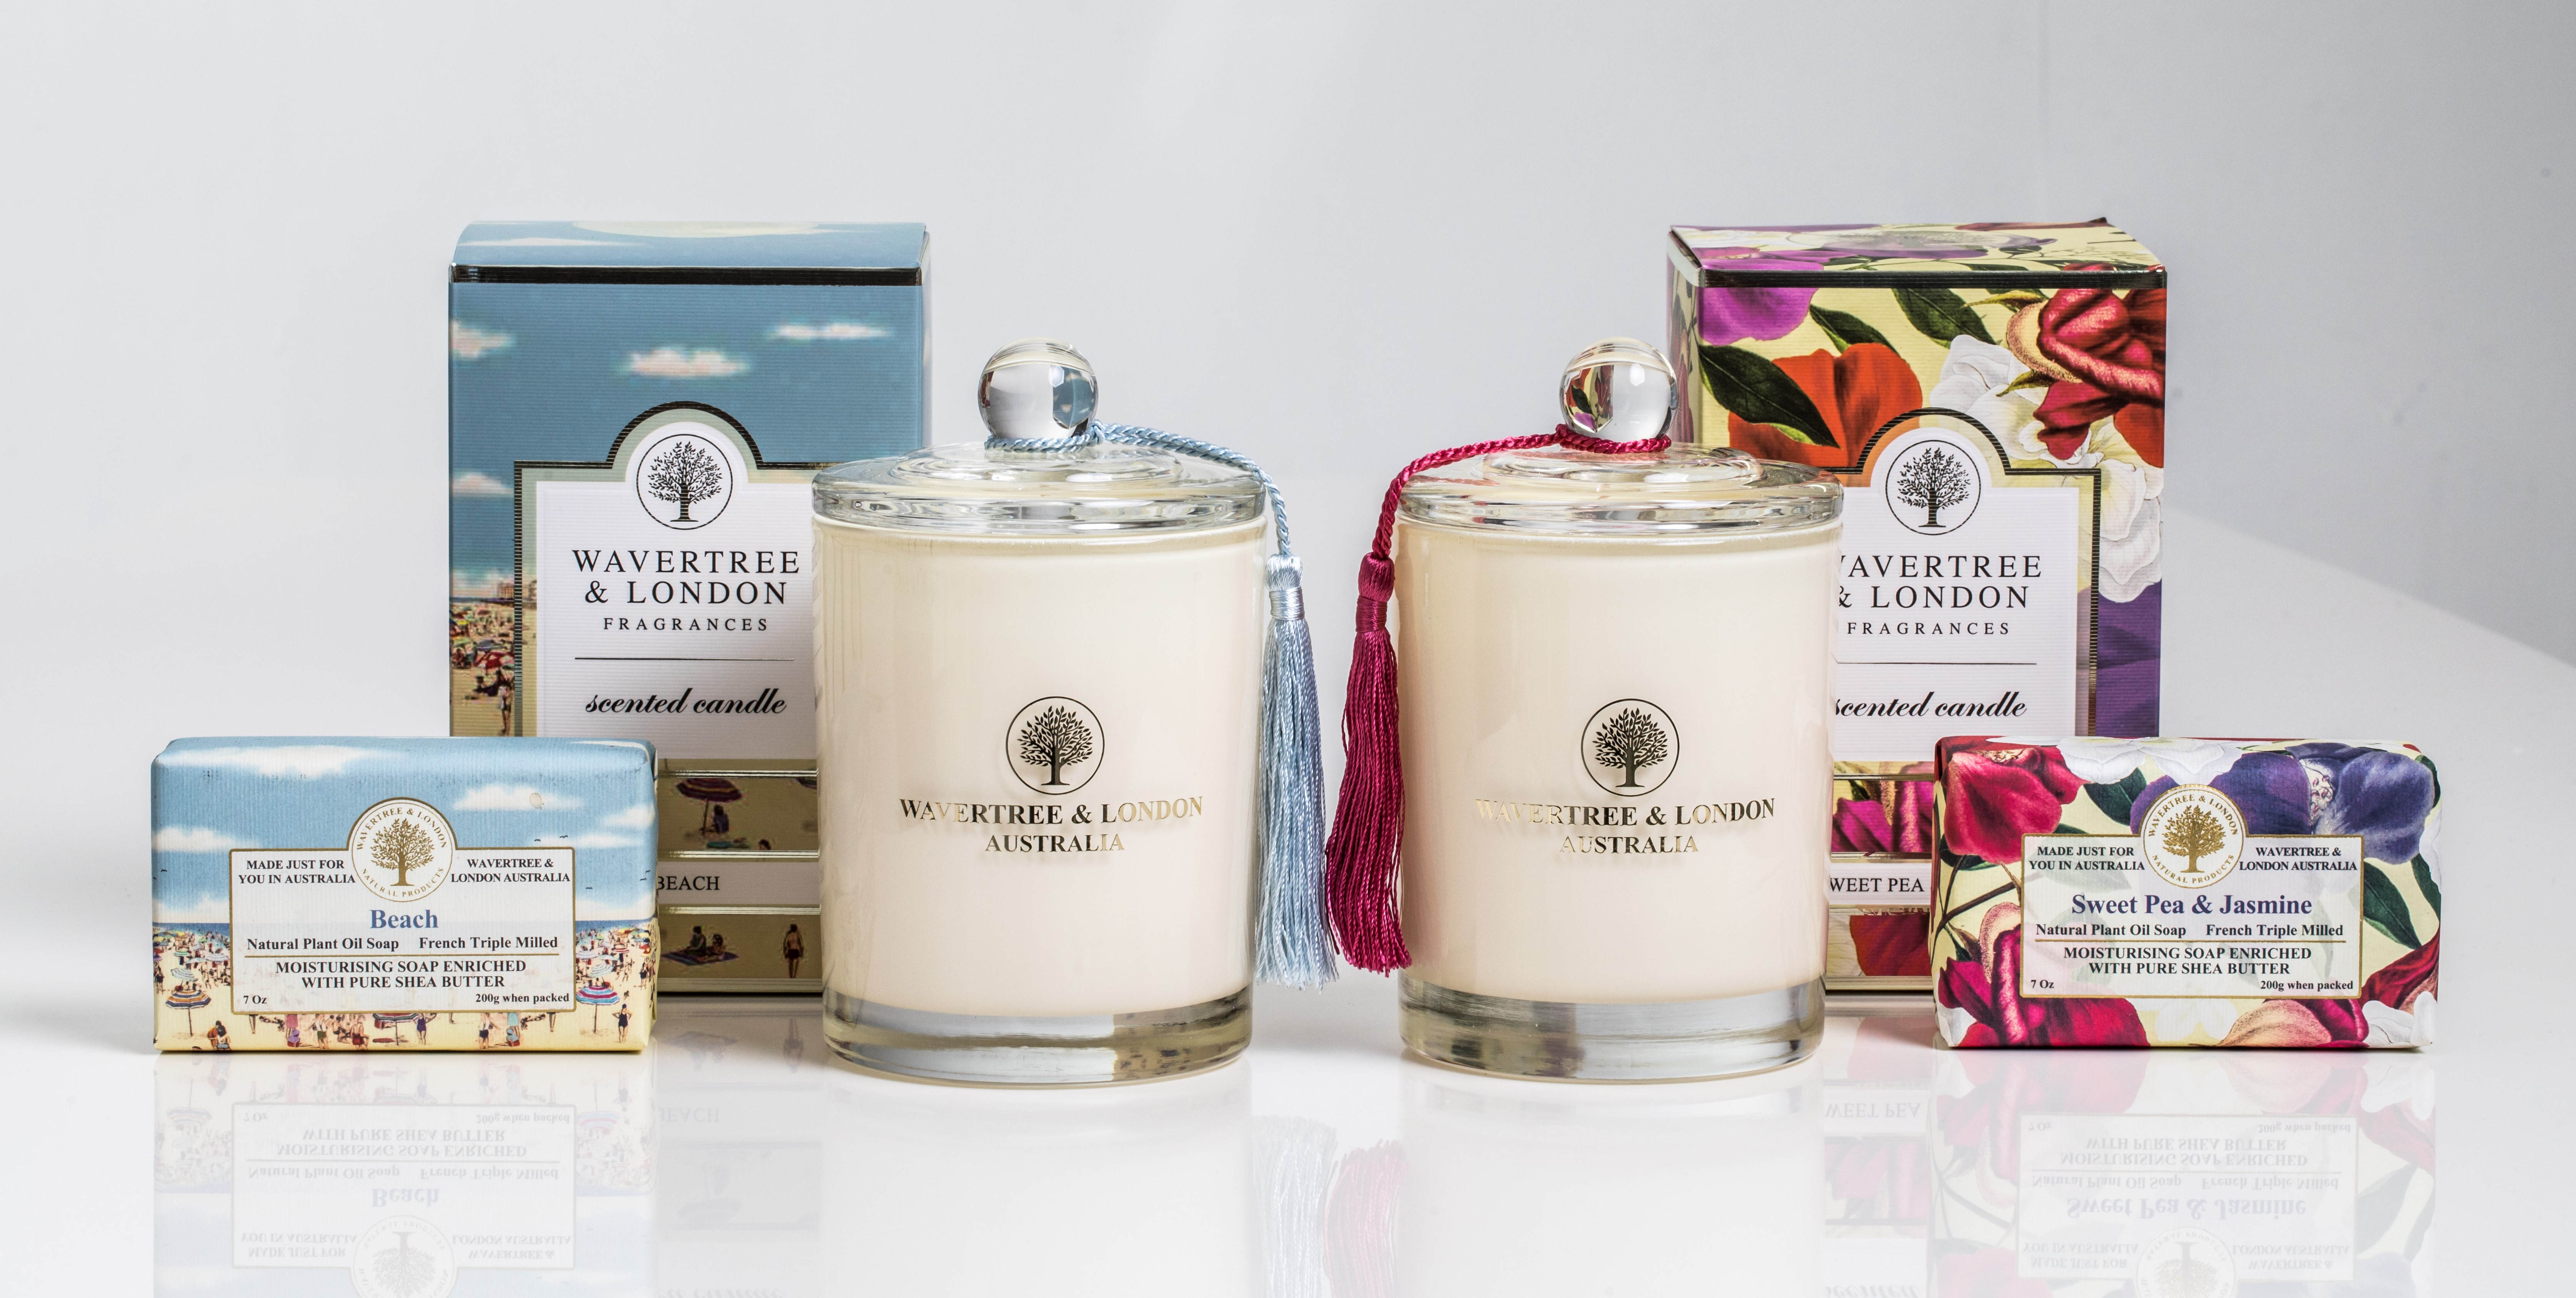 Wavertree & London scented soaps and candles